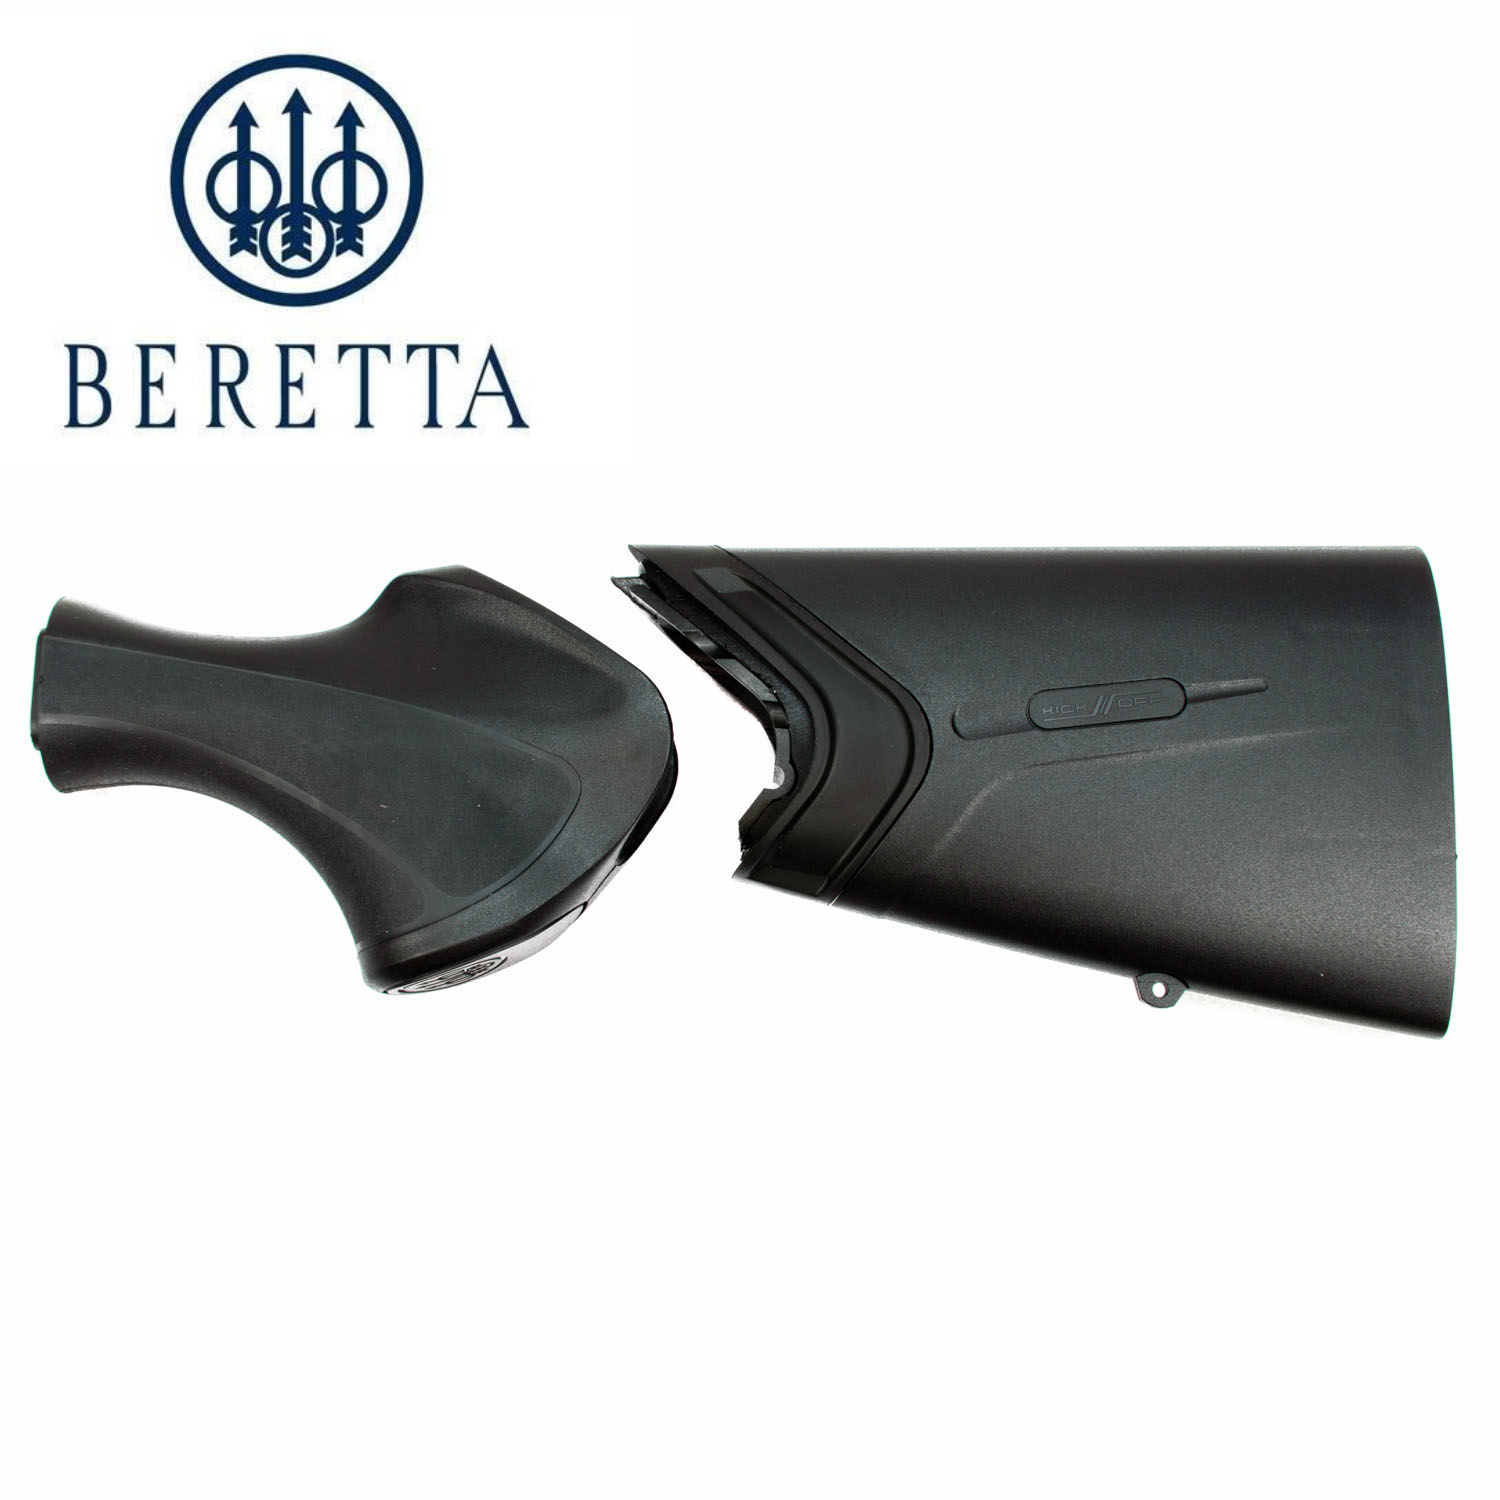 Beretta A400 Xtreme Synthetic Stock, Black: Midwest Gun Works